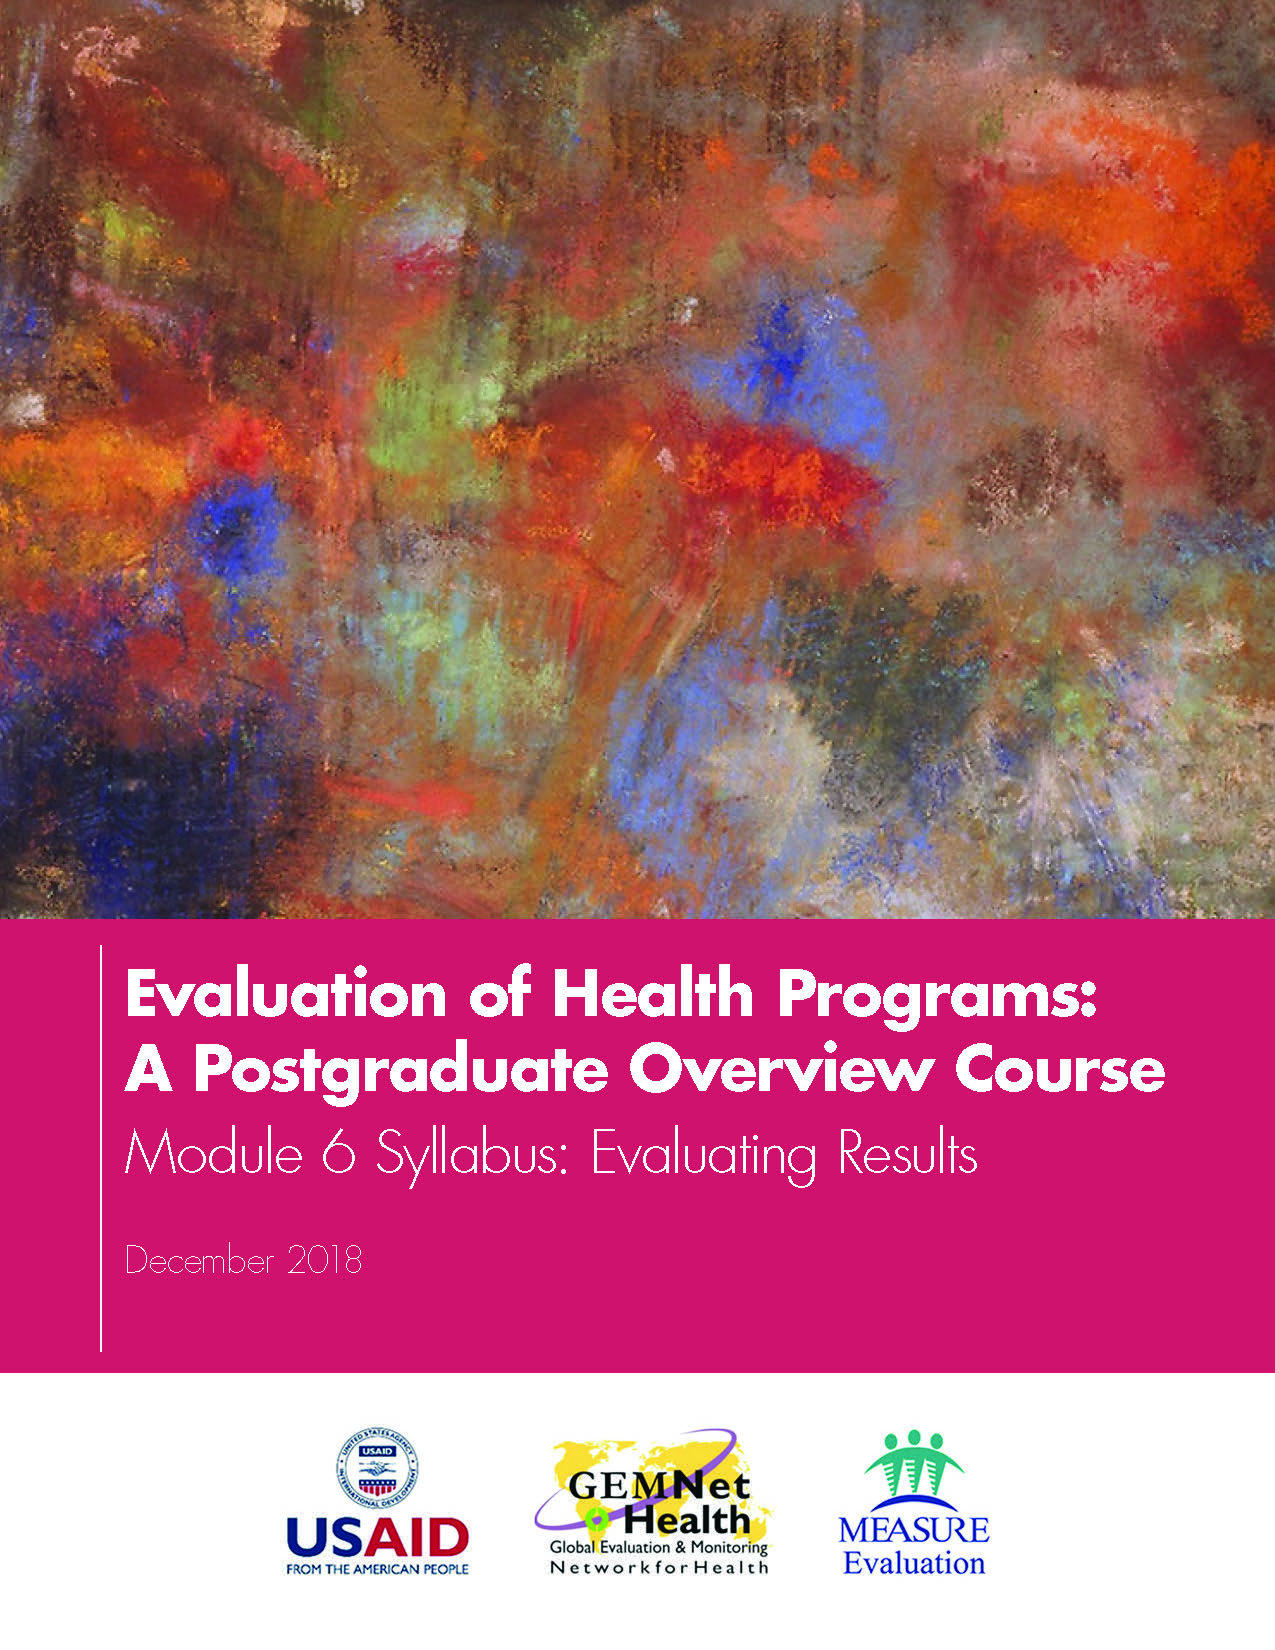 Evaluation of Health Programs: A Postgraduate Overview Course  Module 6 Syllabus: Evaluating Results